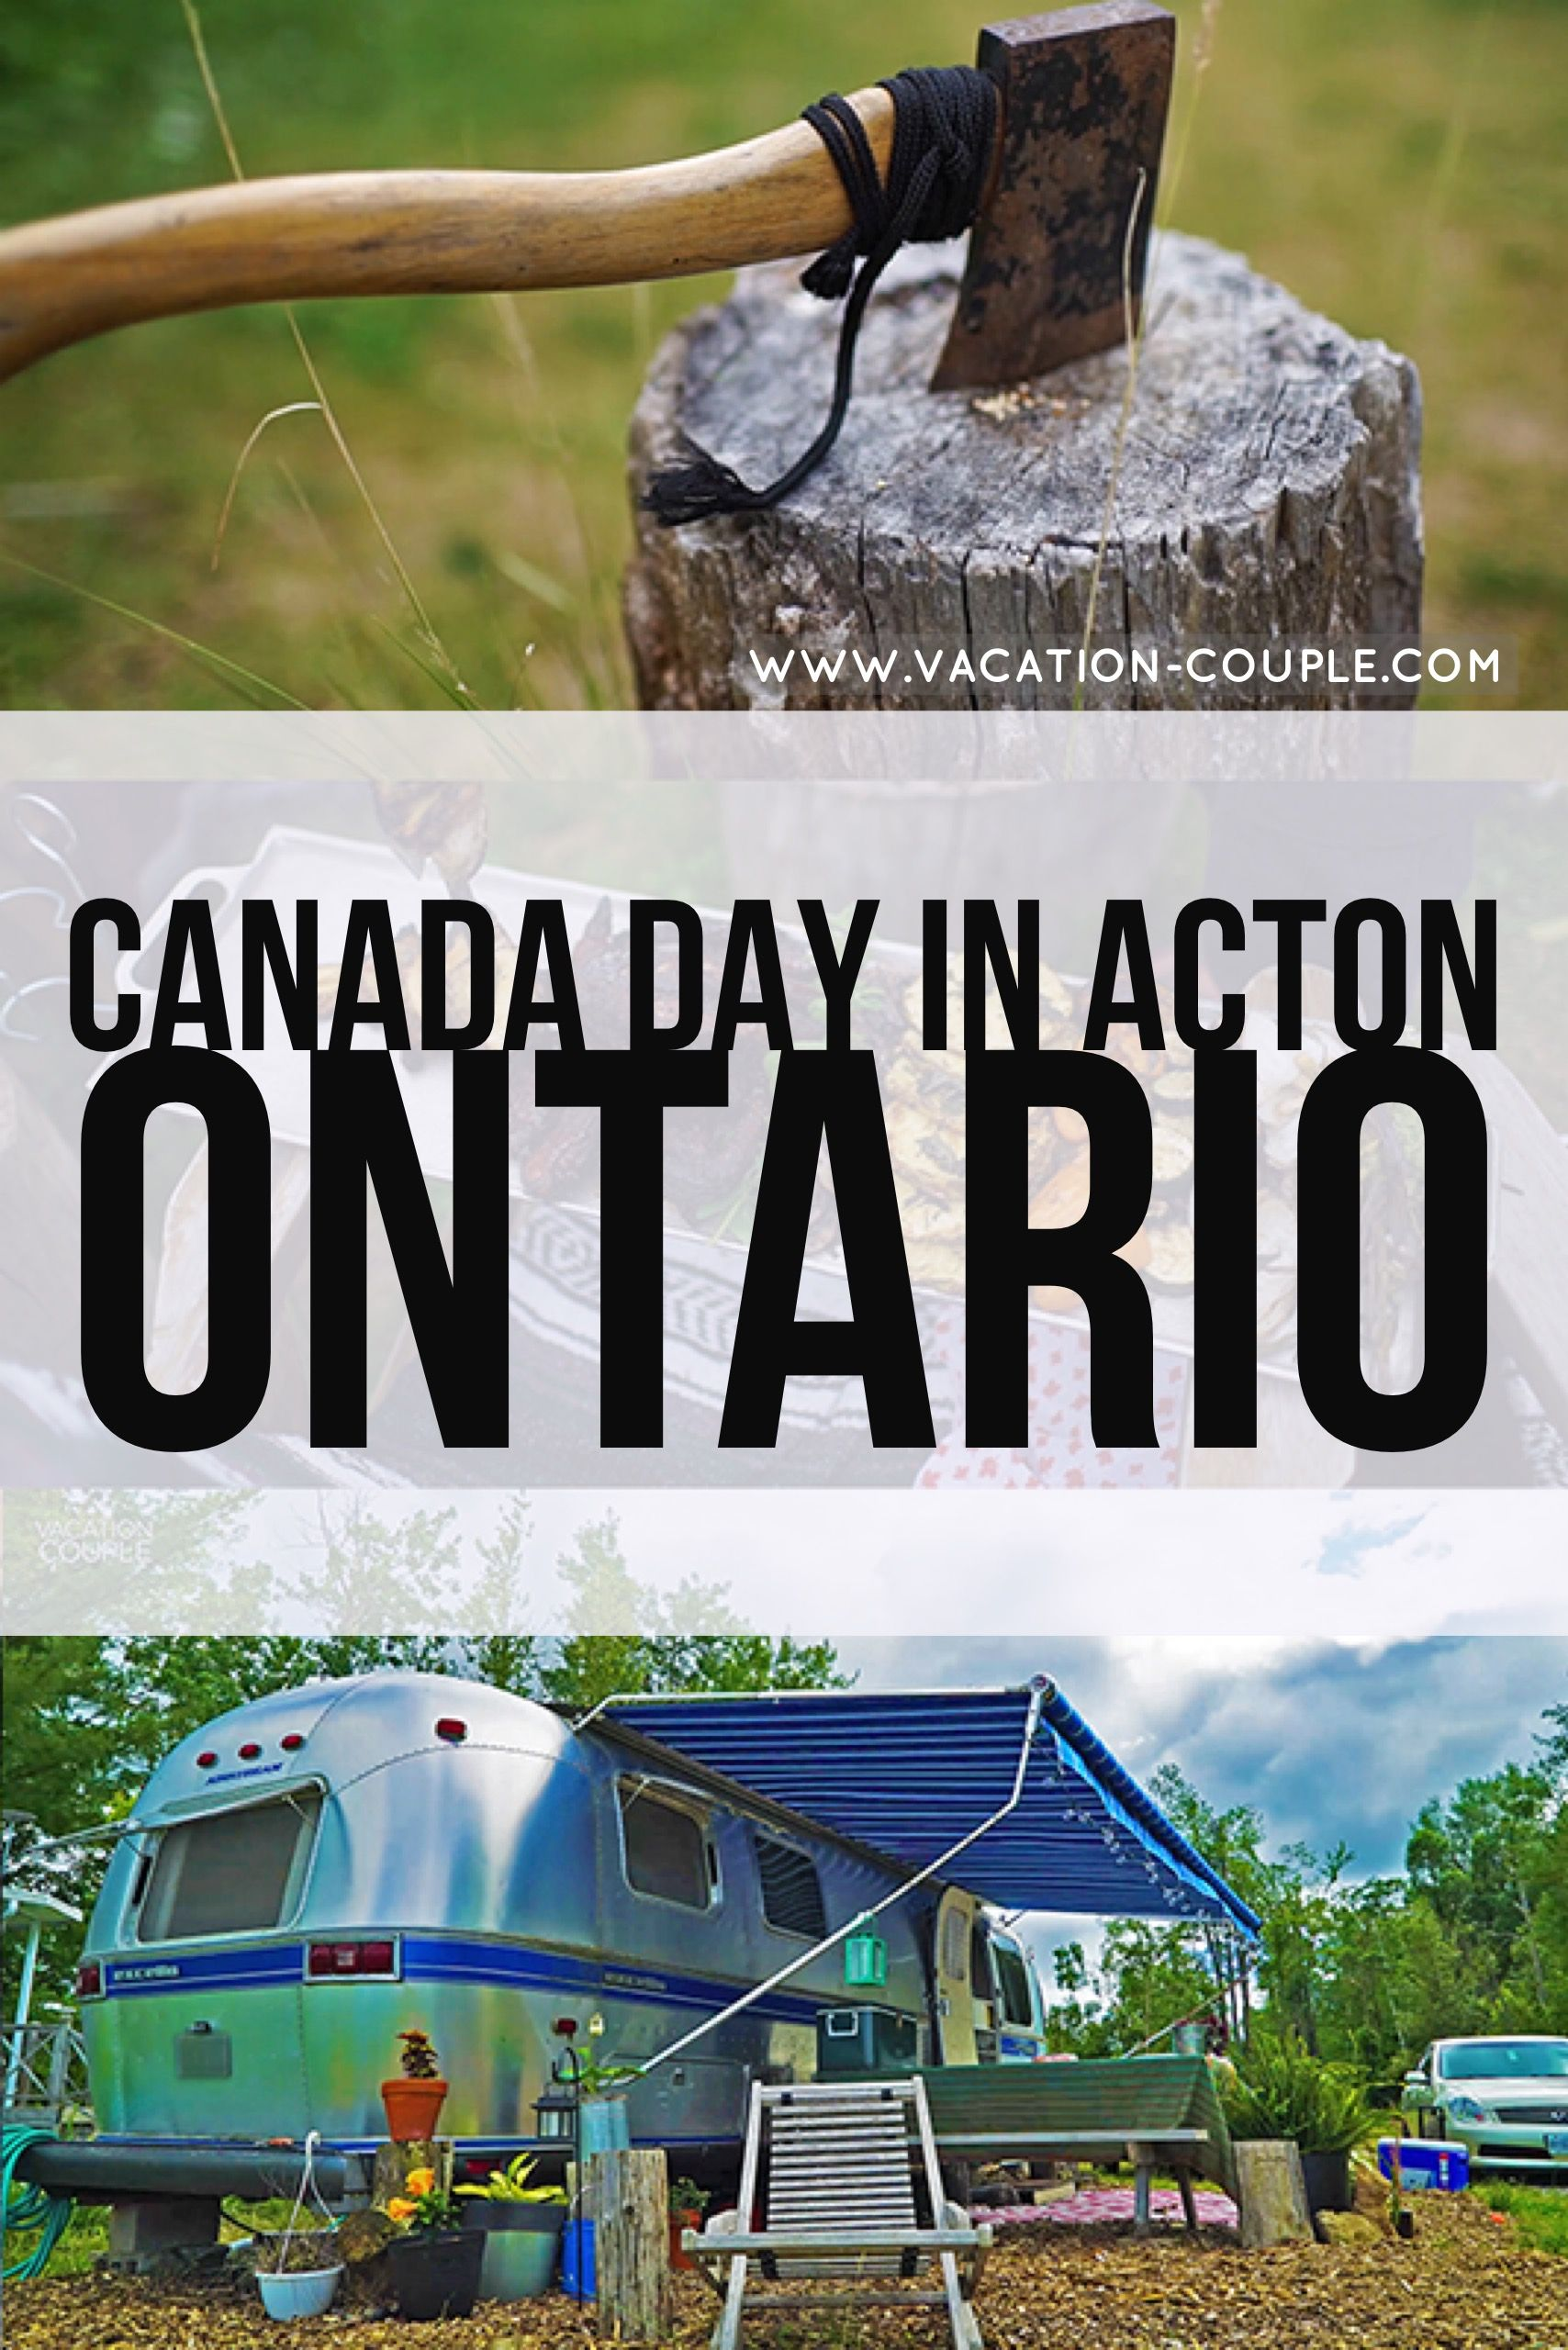 Canada Day in Acton Ontario via Vacation Couple | We ...